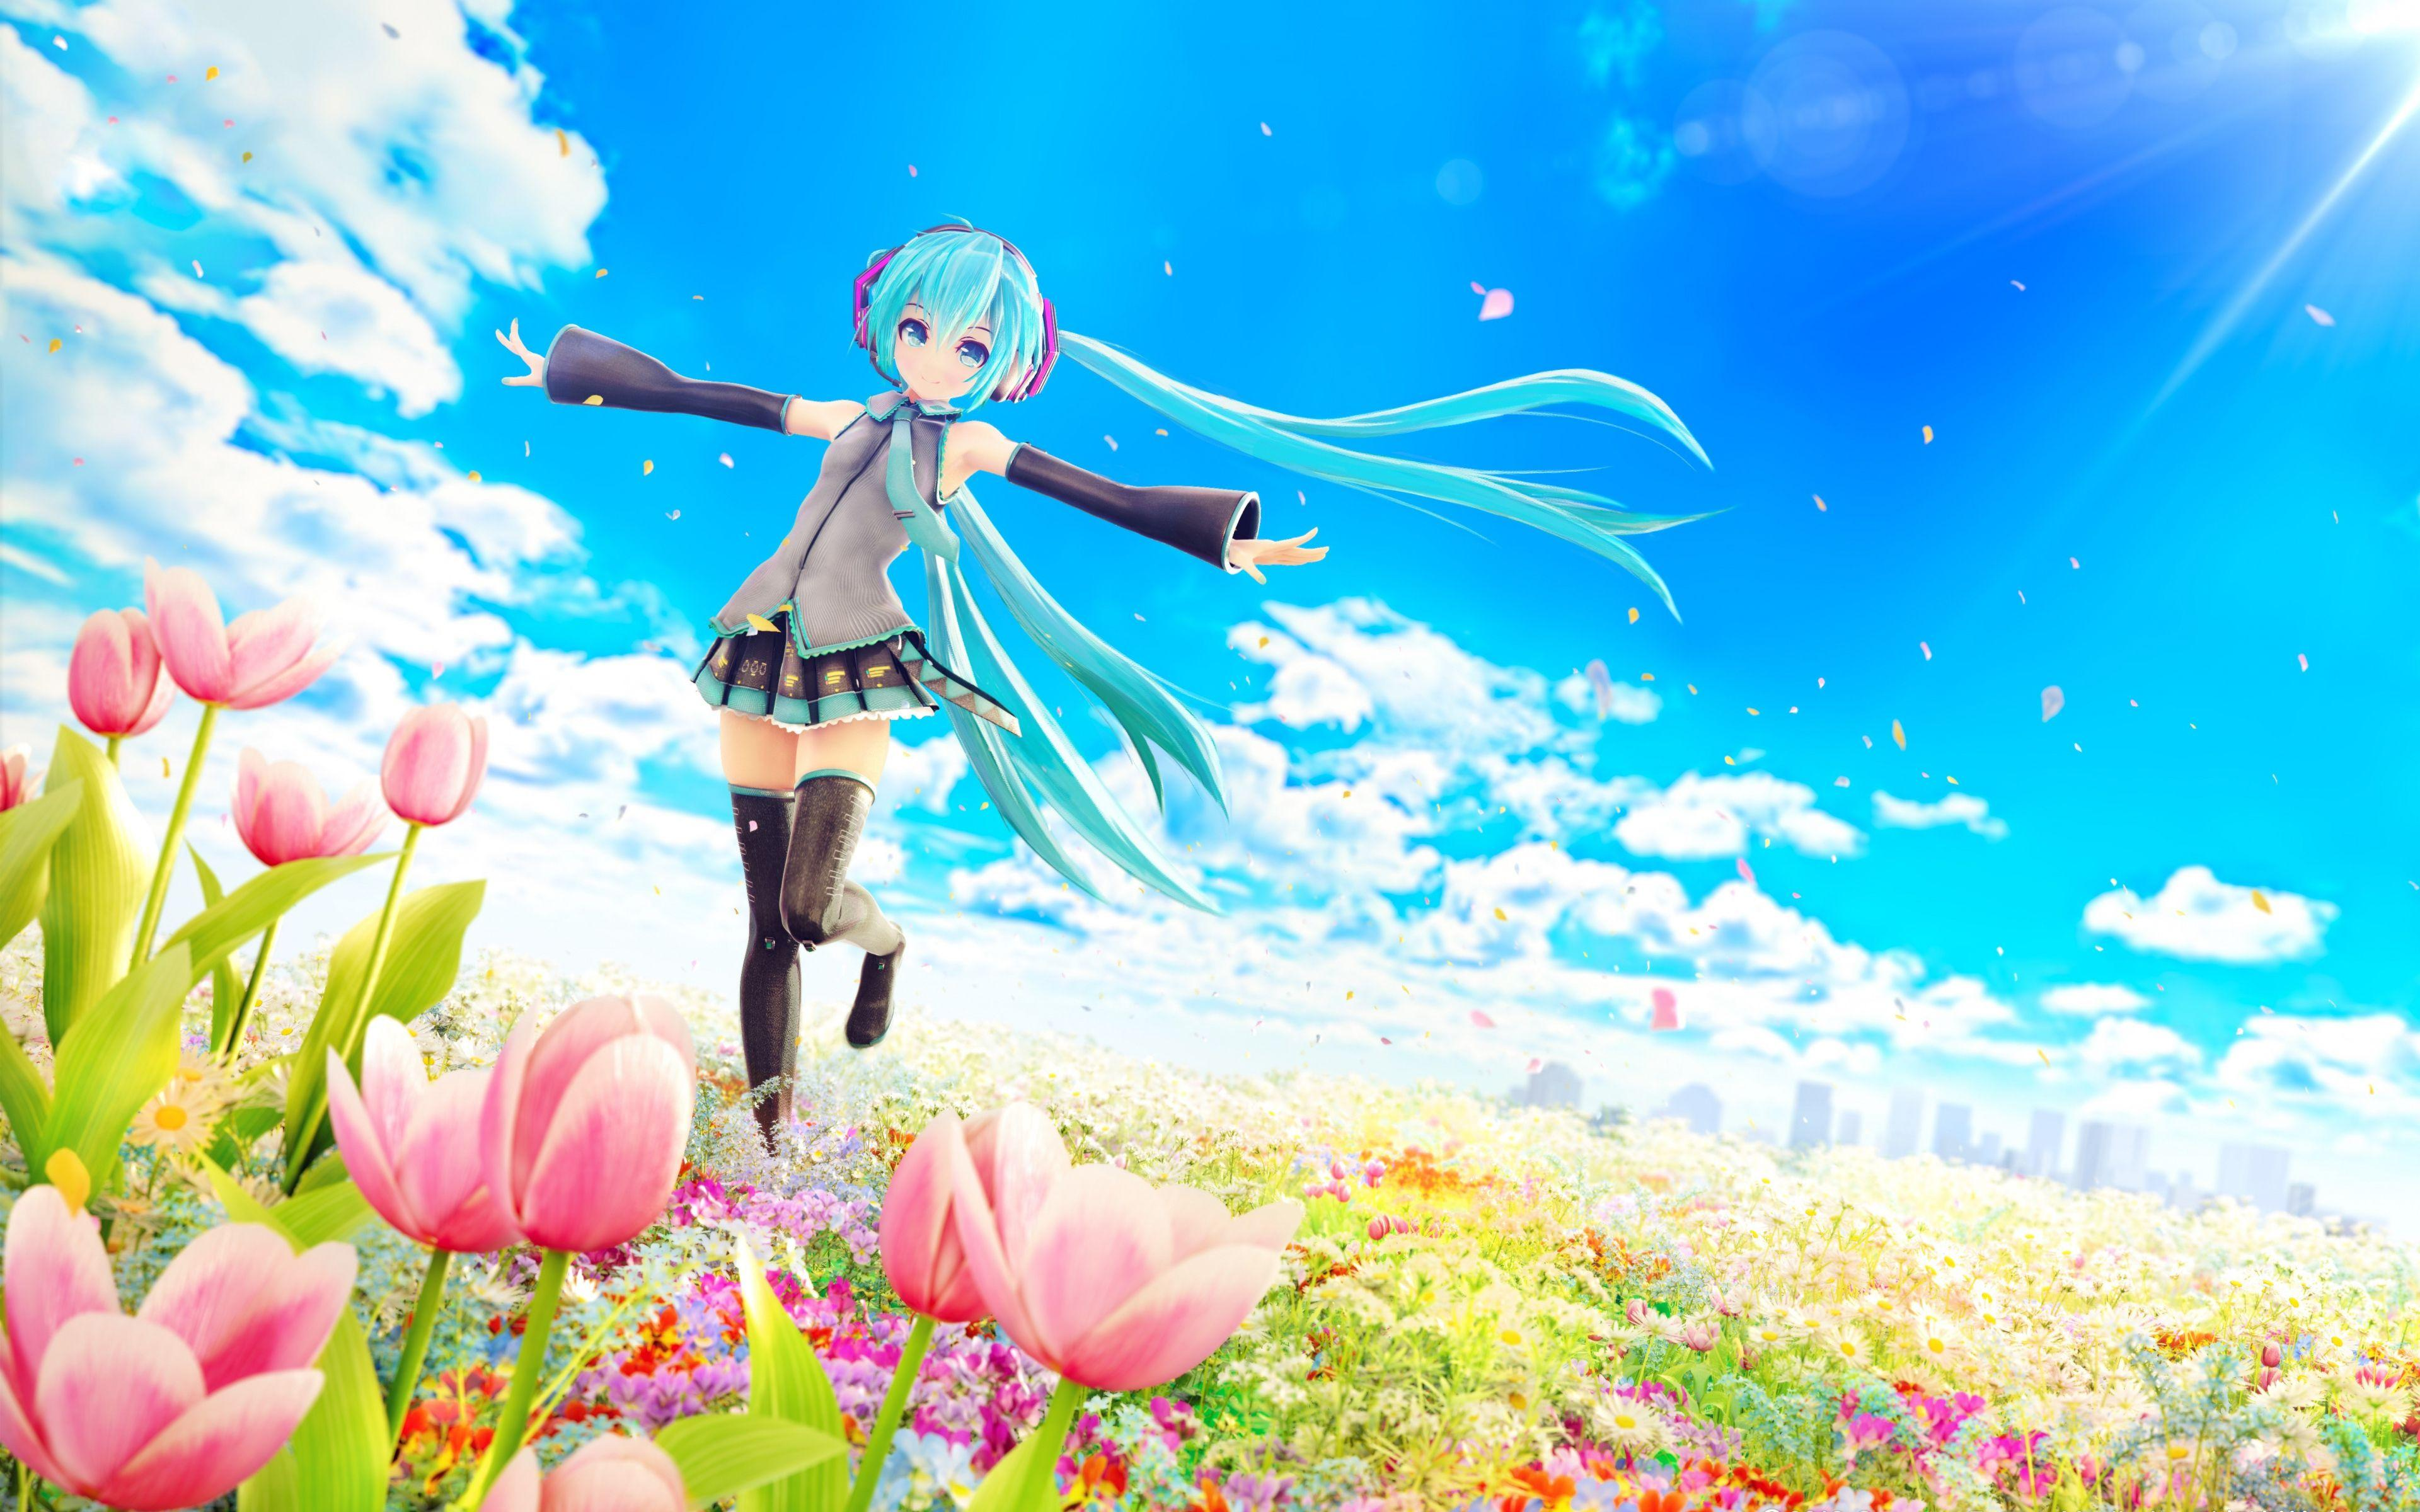 Ultra HD 4K Anime Wallpapers, Desktop Backgrounds HD, Pictures and